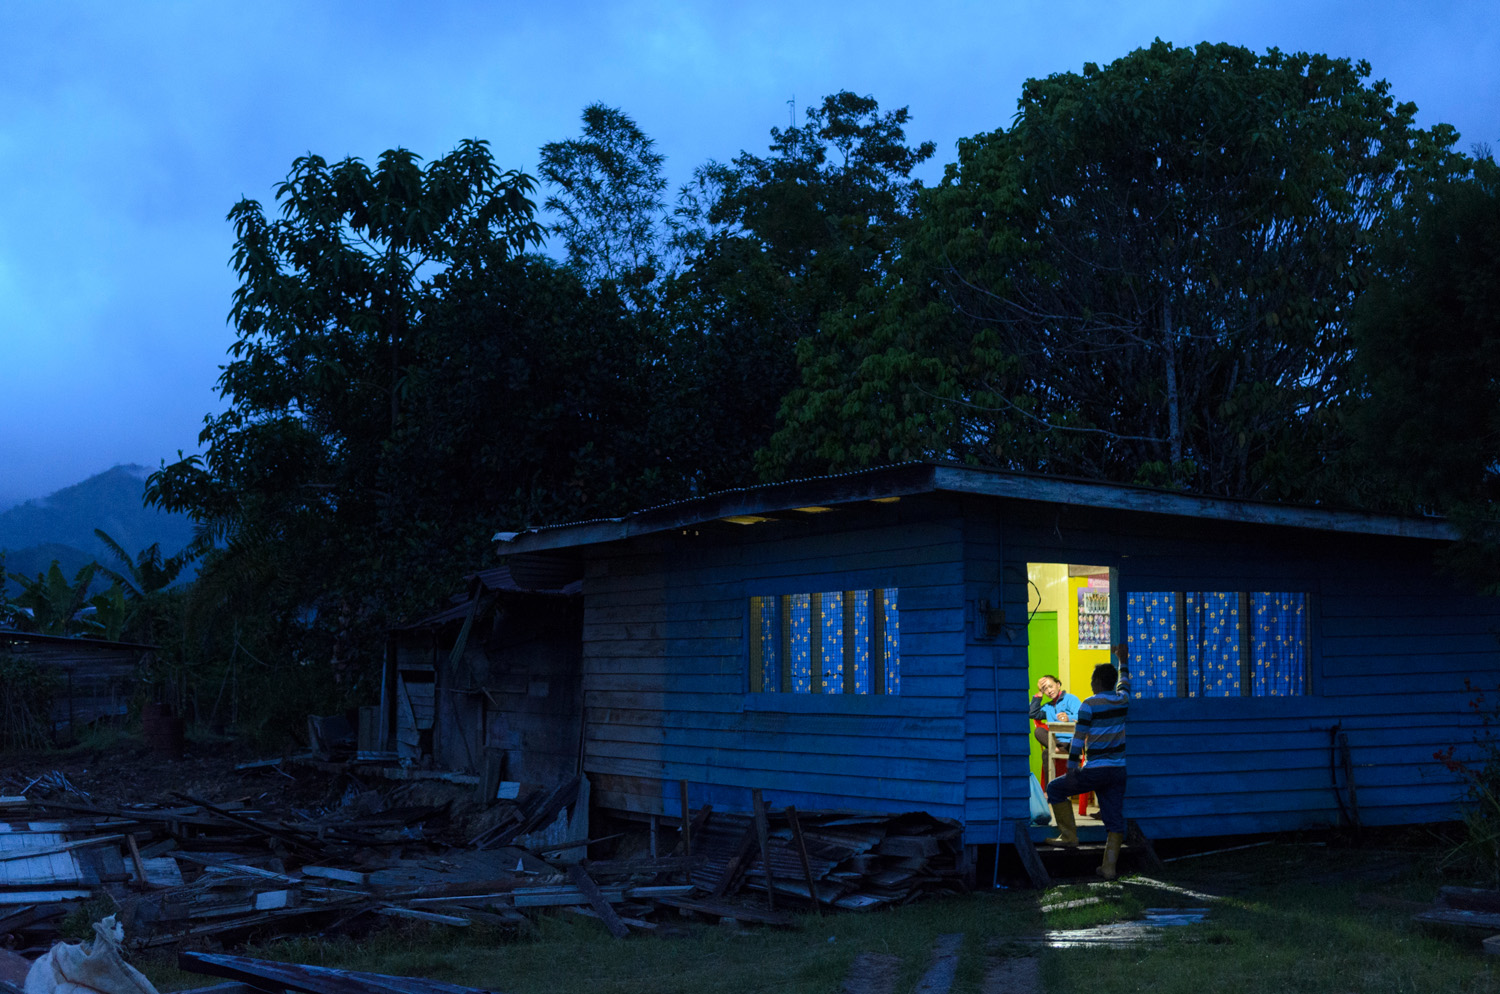 Night falls on a couple having a conversation in the doorway of a house in Bario, Sarawak, Malaysia.